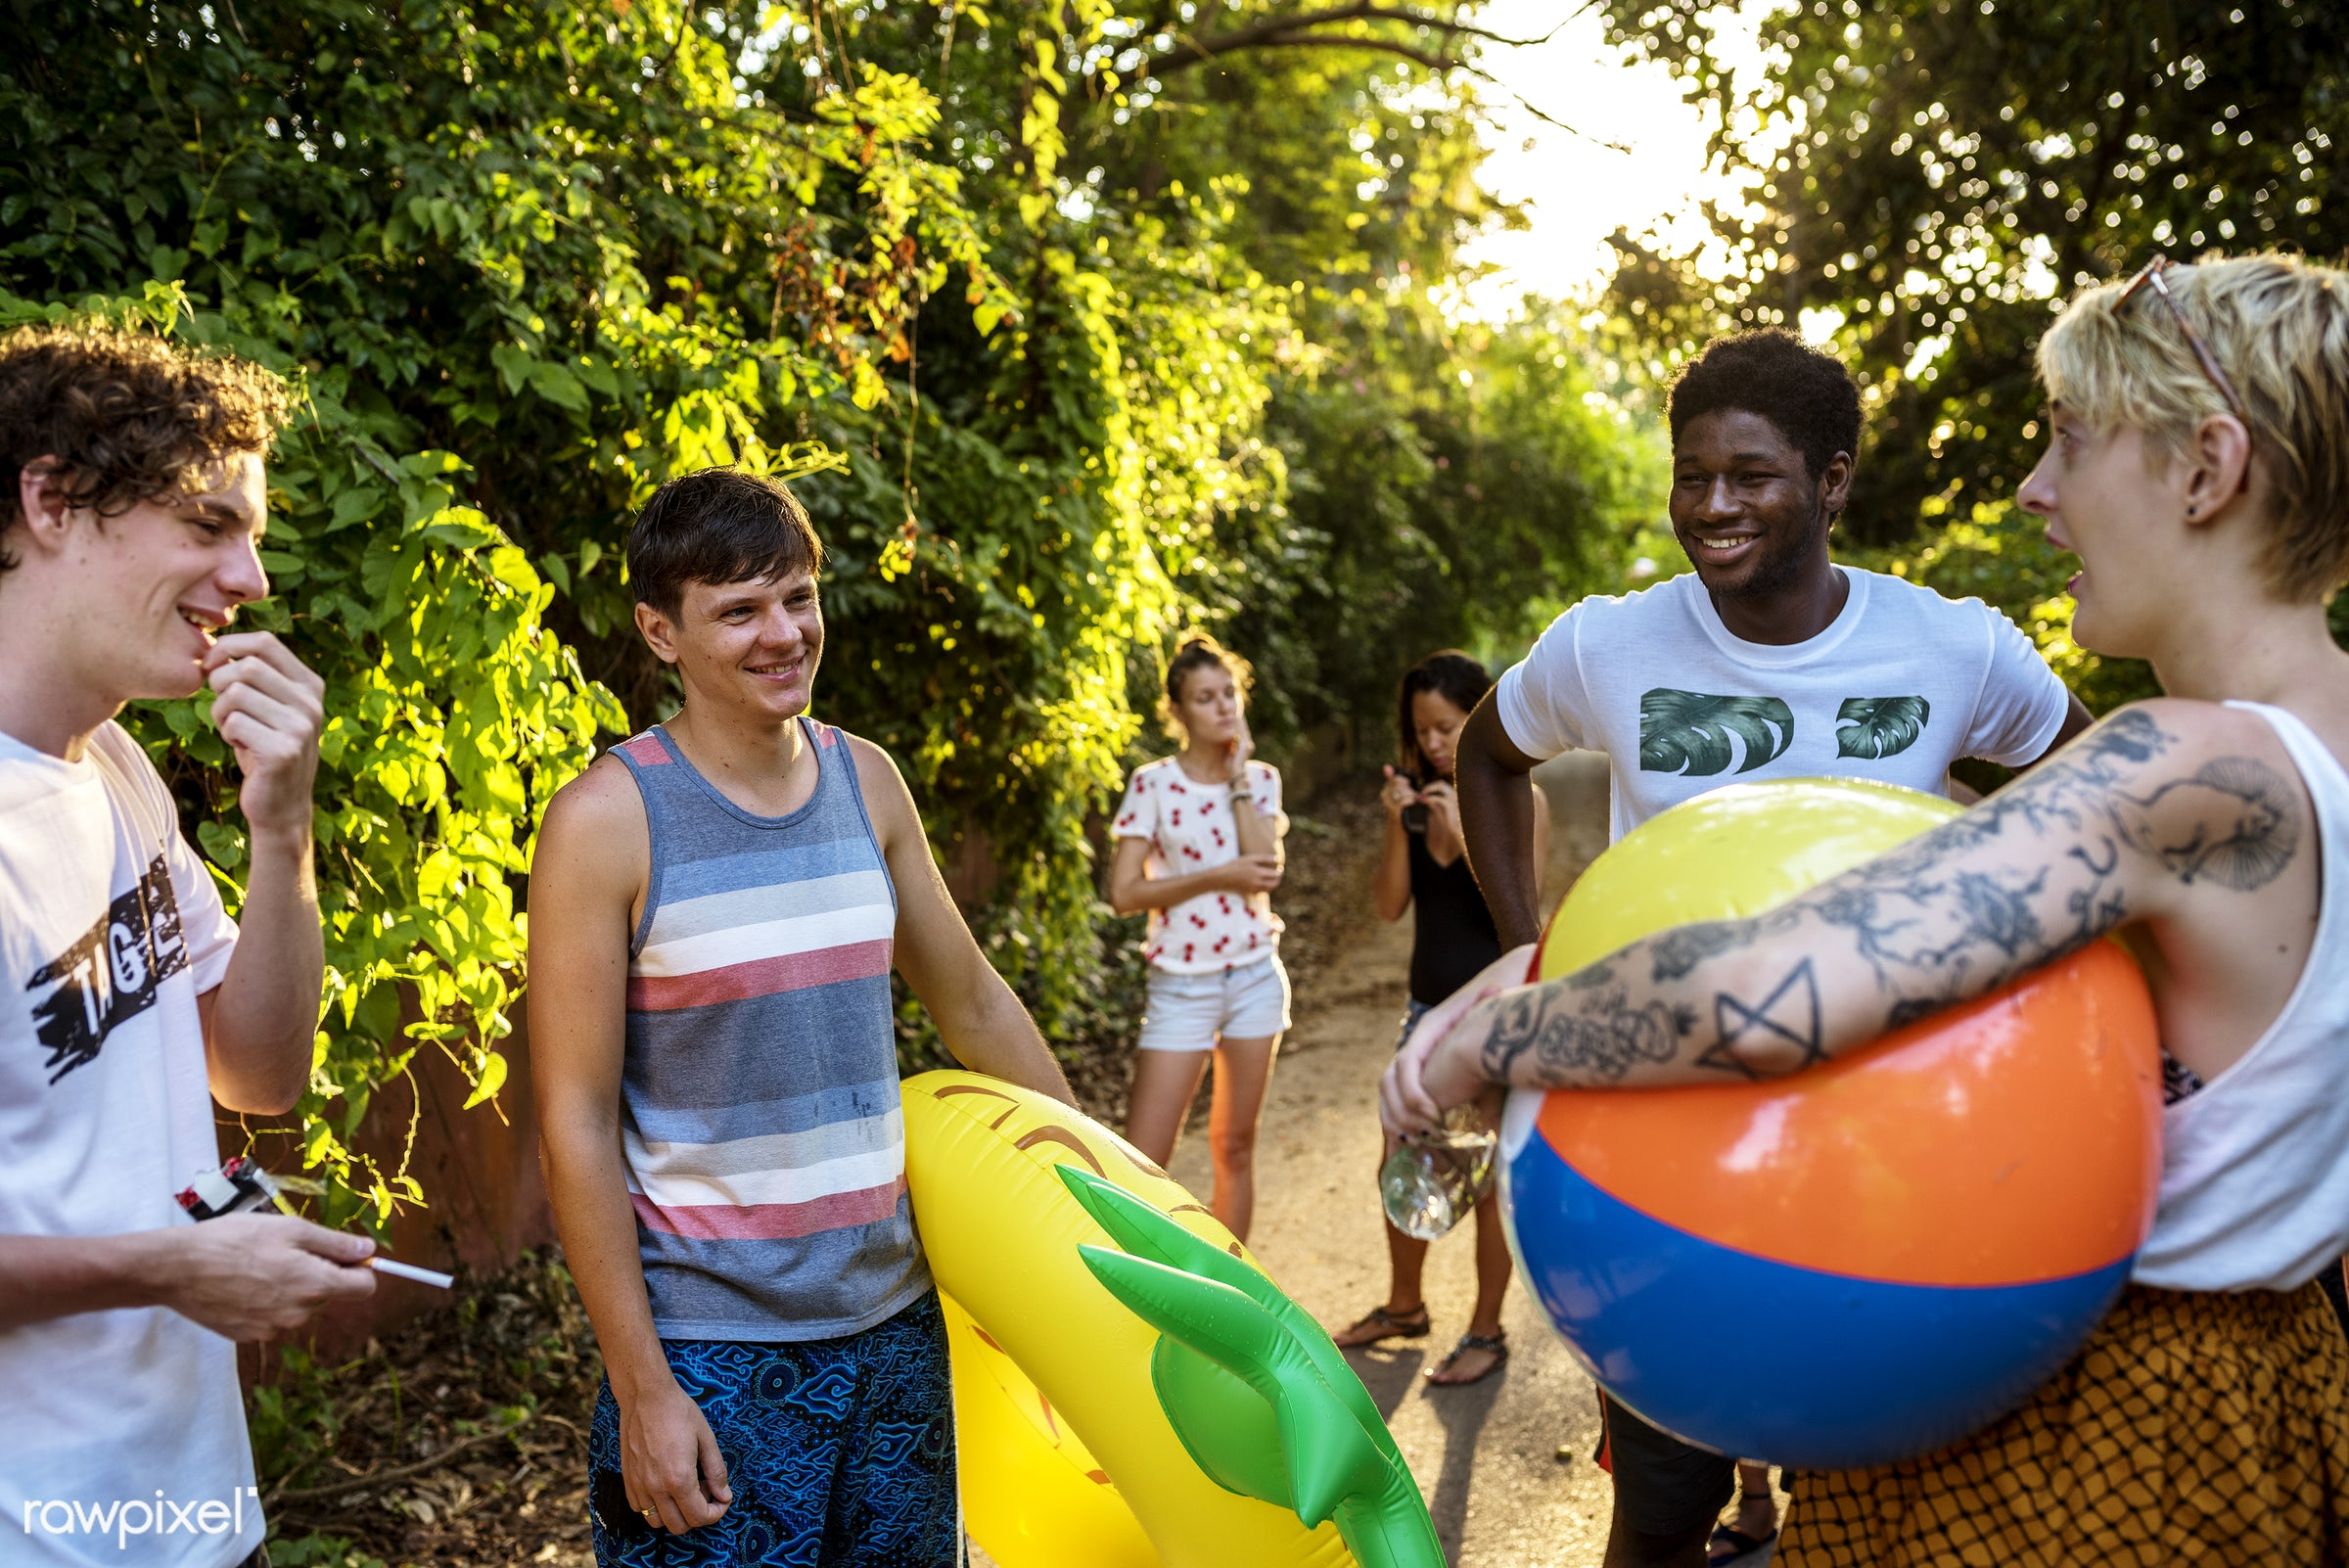 alley, balls, cheerful, diversity, expression, friends, fun, group, happiness, inflatable, leisure, looking, nature,...